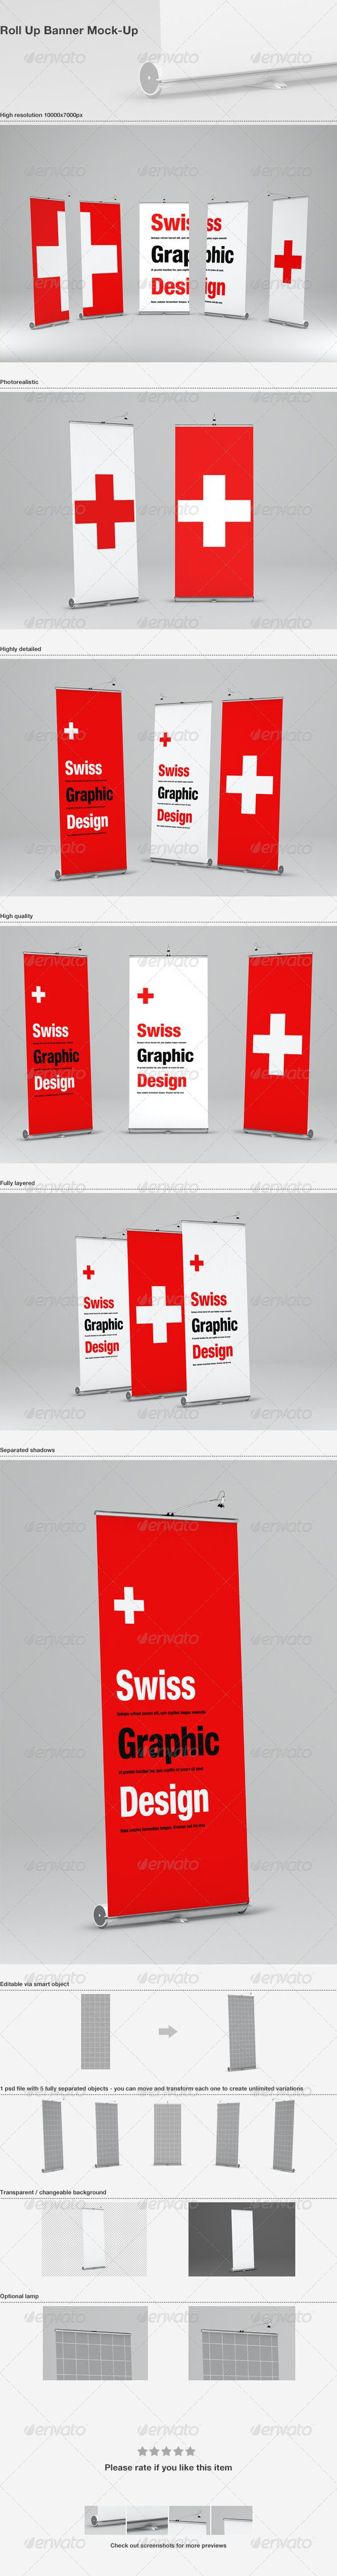 Roll Up Banner Mock-Up  #GraphicRiver        Roll Up Banner Mock-Up Features    1 Psd File (10000×7000px)  5 Different angles (65 degrees ,45 degrees, 0 degrees)  Banner dimensions – 100×220cm   Editable via smart object  Transparent / changeable background  High resolution 10000×7000px       Created: 21December12 GraphicsFilesIncluded: PhotoshopPSD HighResolution: Yes Layered: Yes MinimumAdobeCSVersion: CS4 PixelDimensions: 10000x7000 Tags: banner #display #elegant #mockup #mock-up #mockup…